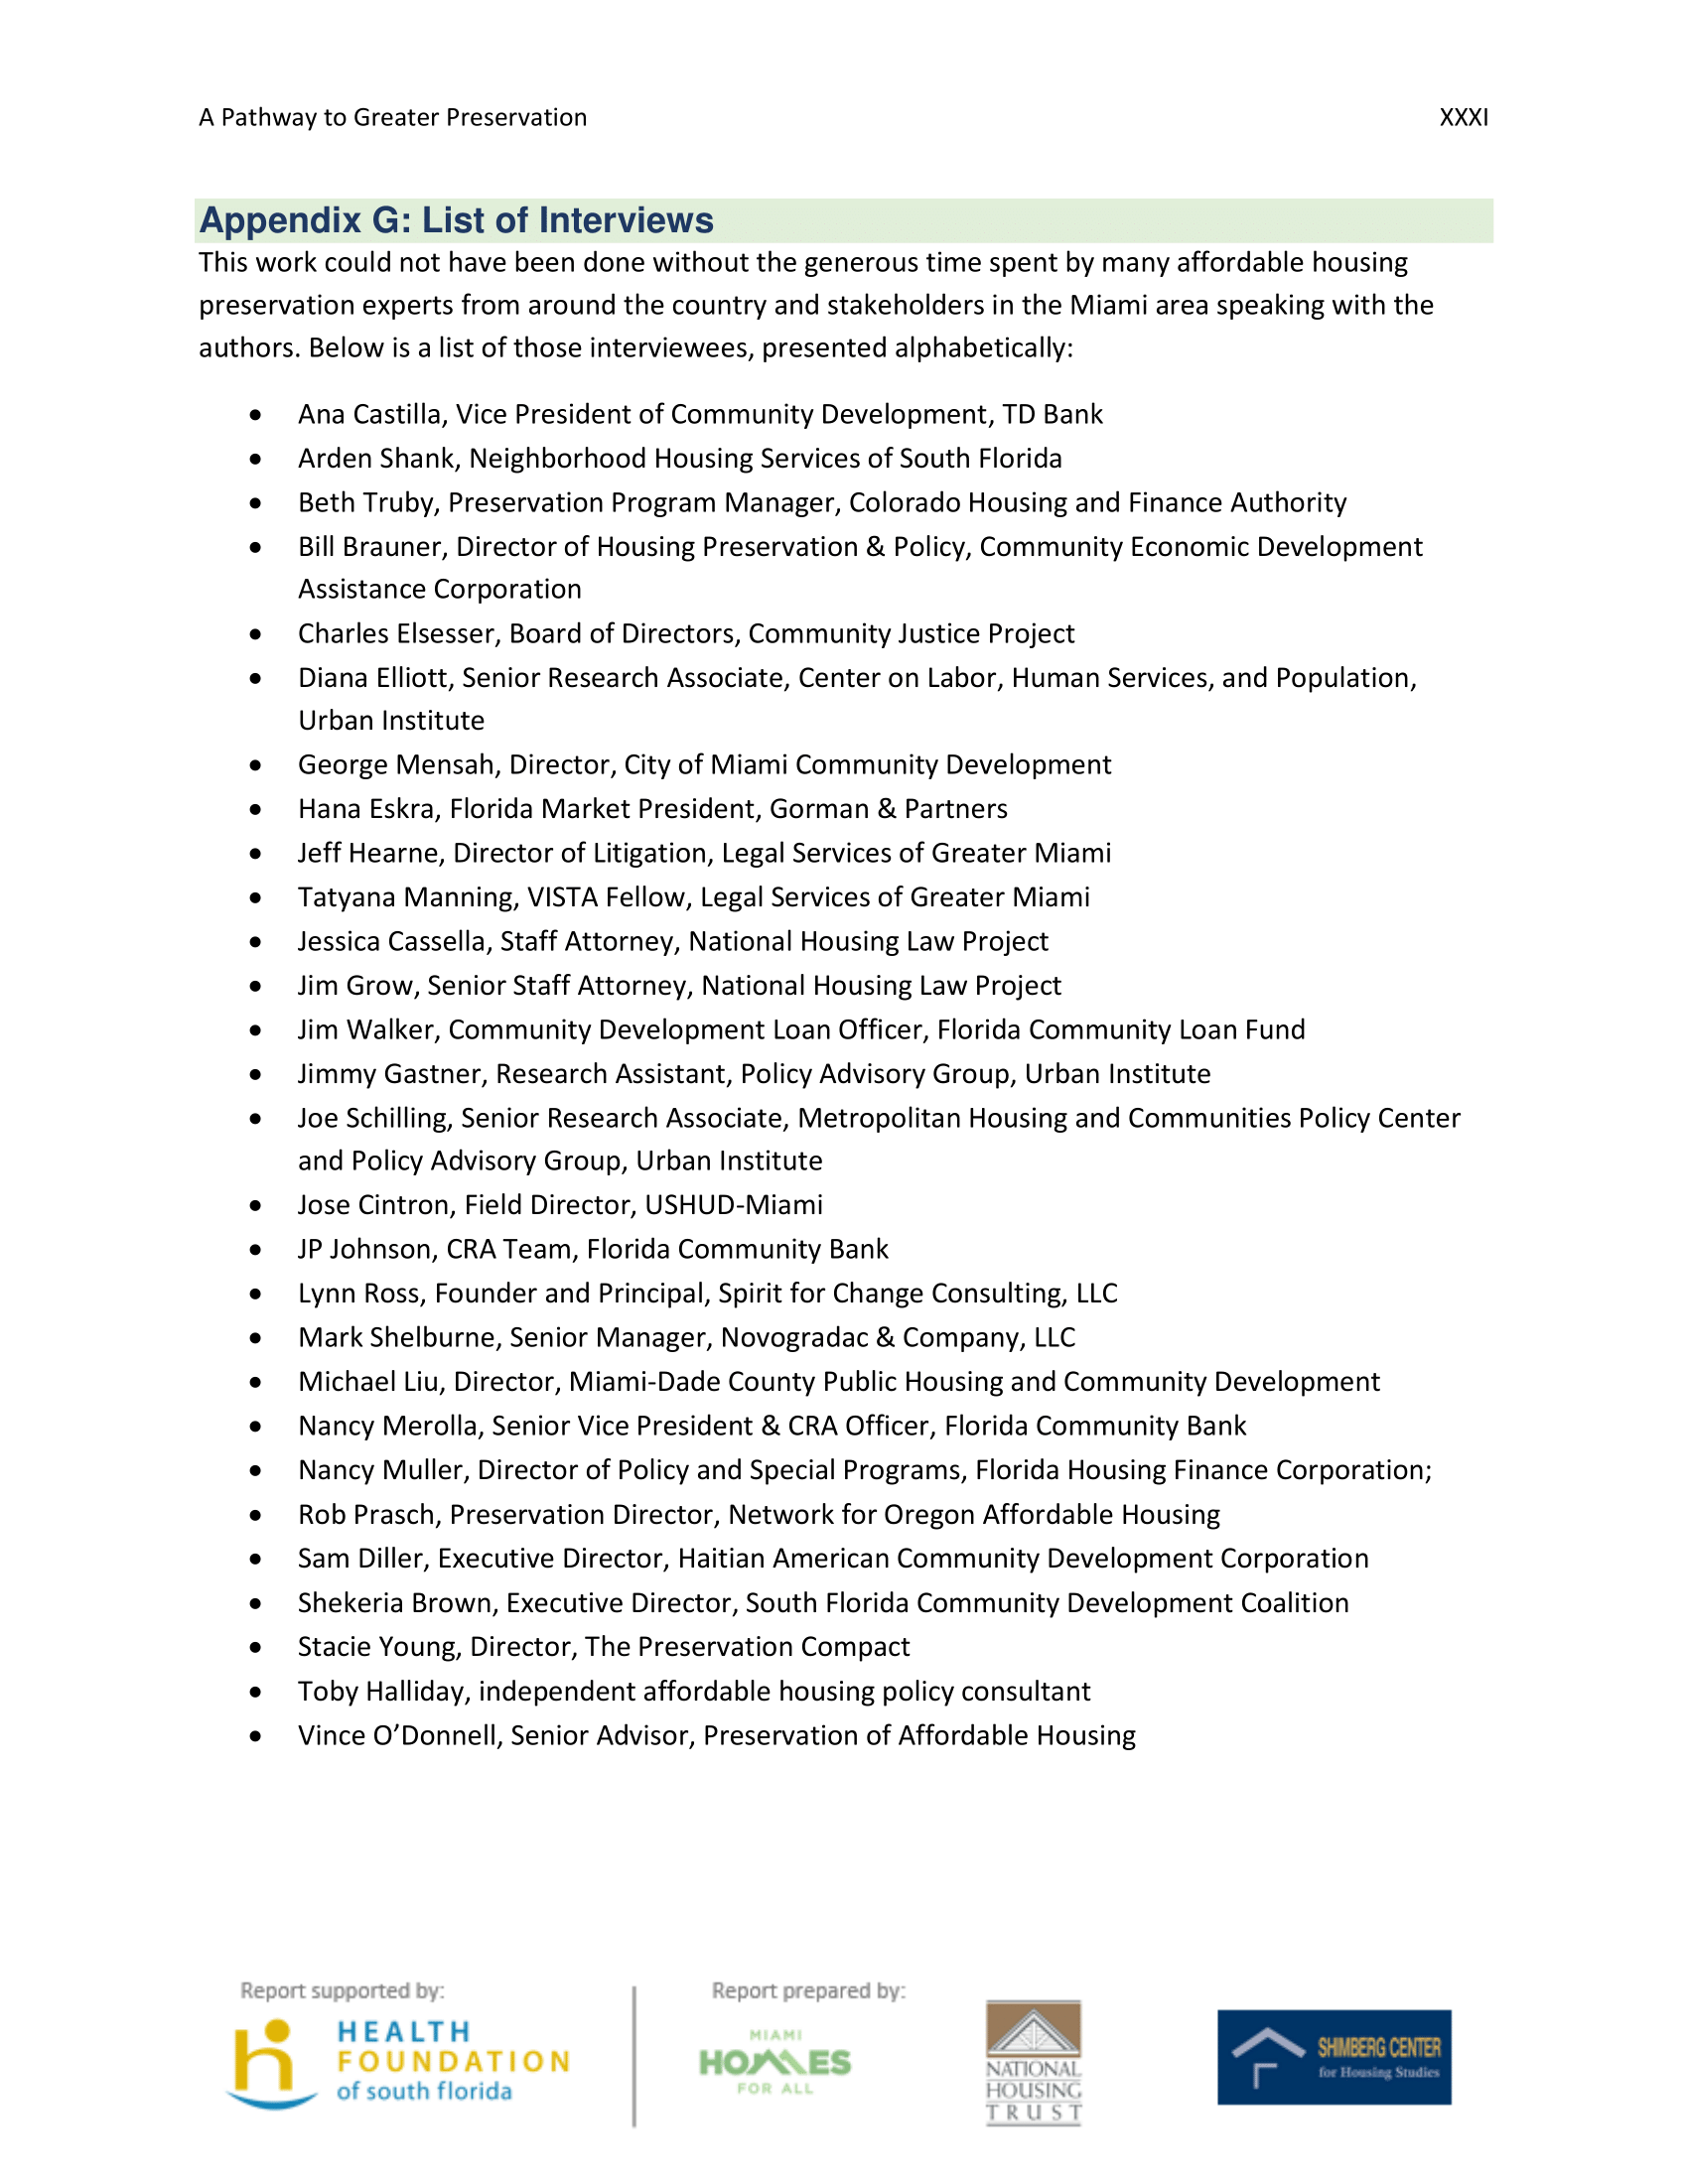 A Pathway to Greater Preservation - February 2018-77.png